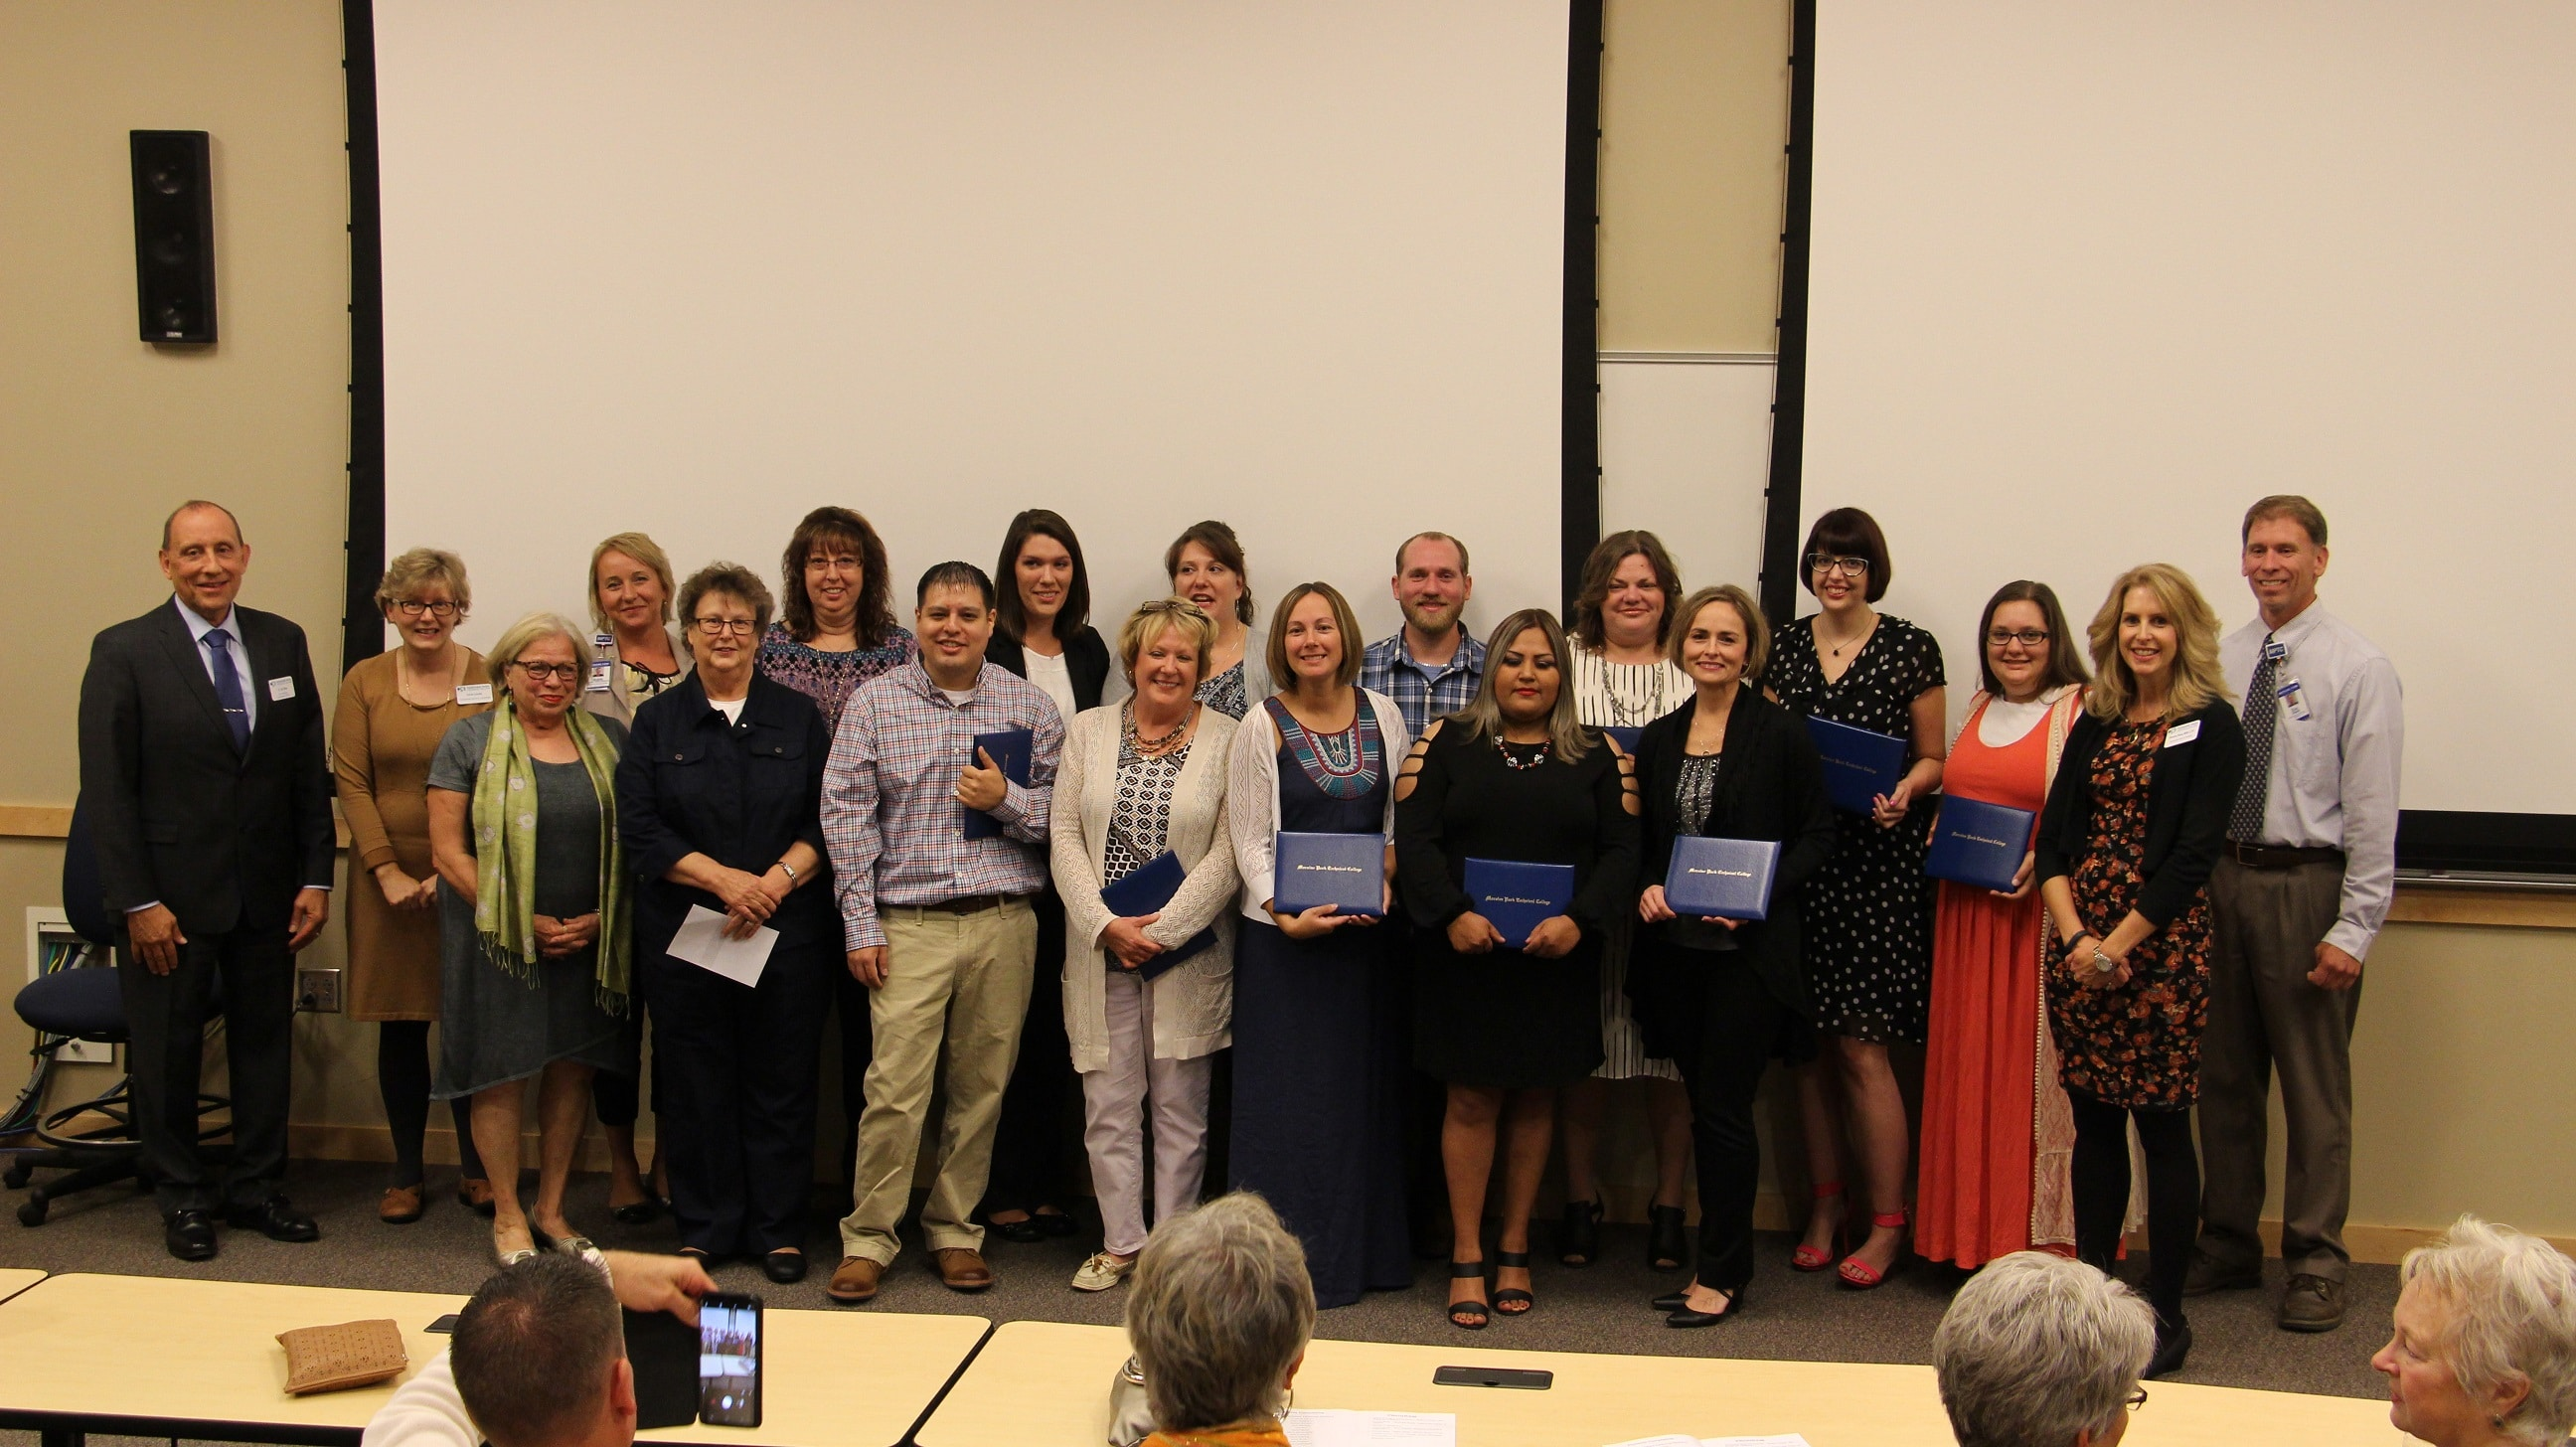 MA graduates celebrate with MPTC faculty and staff